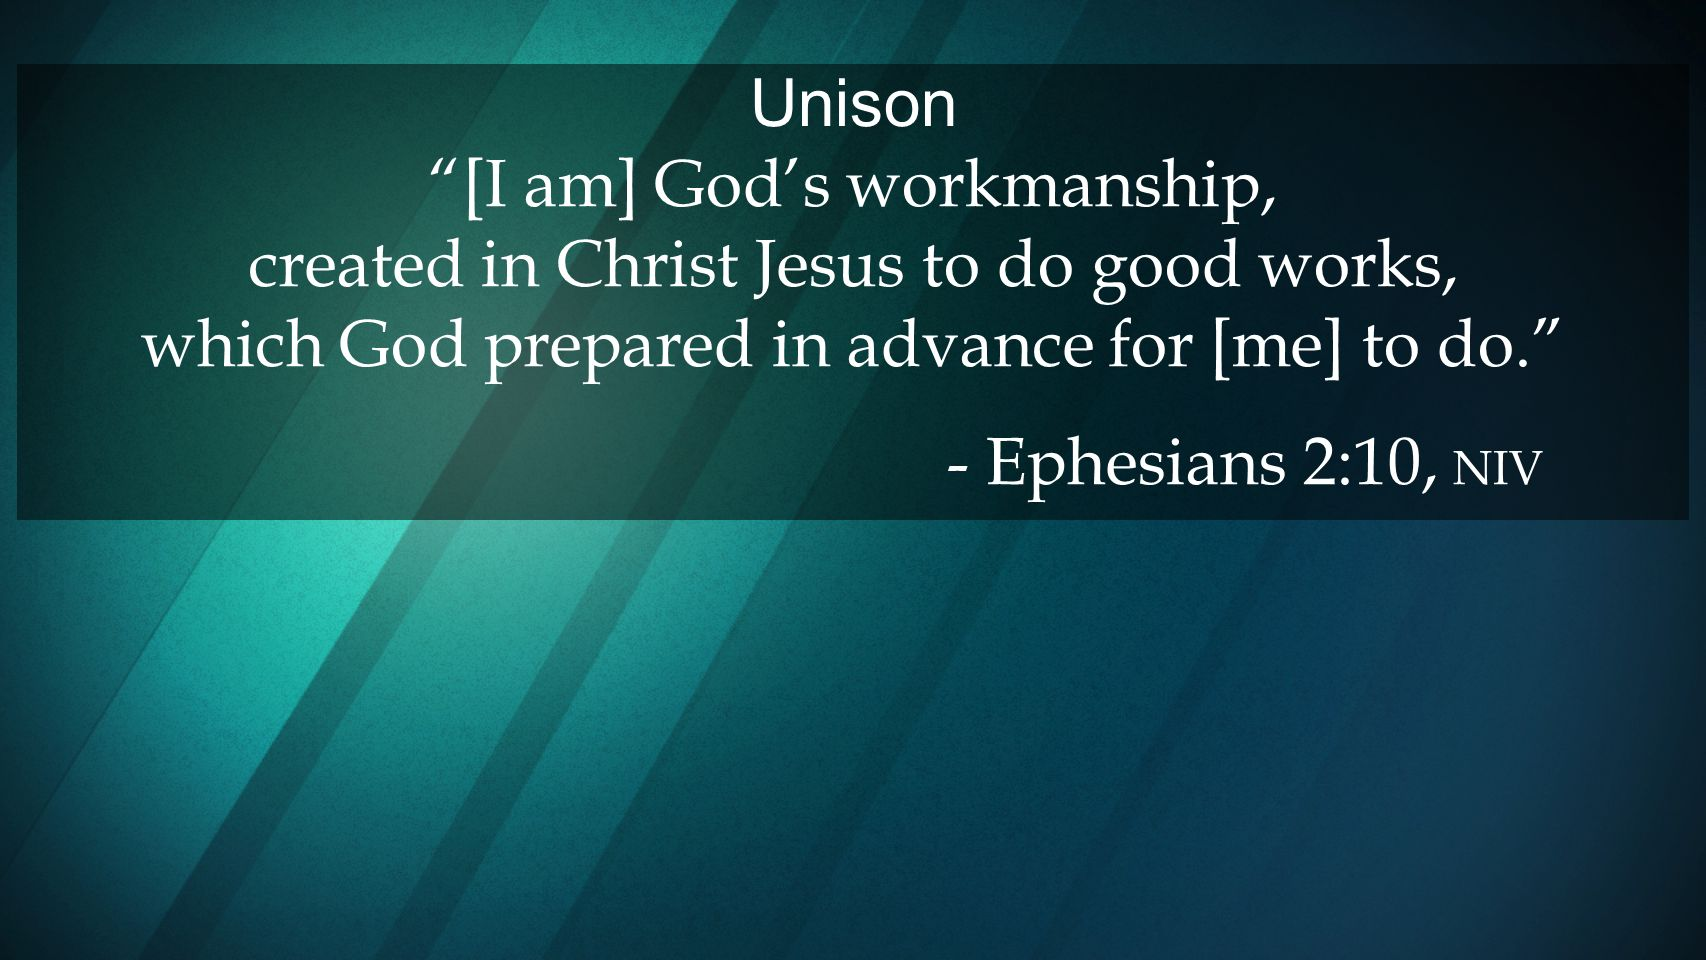 Unison [I am] God's workmanship, created in Christ Jesus to do good works, which God prepared in advance for [me] to do.